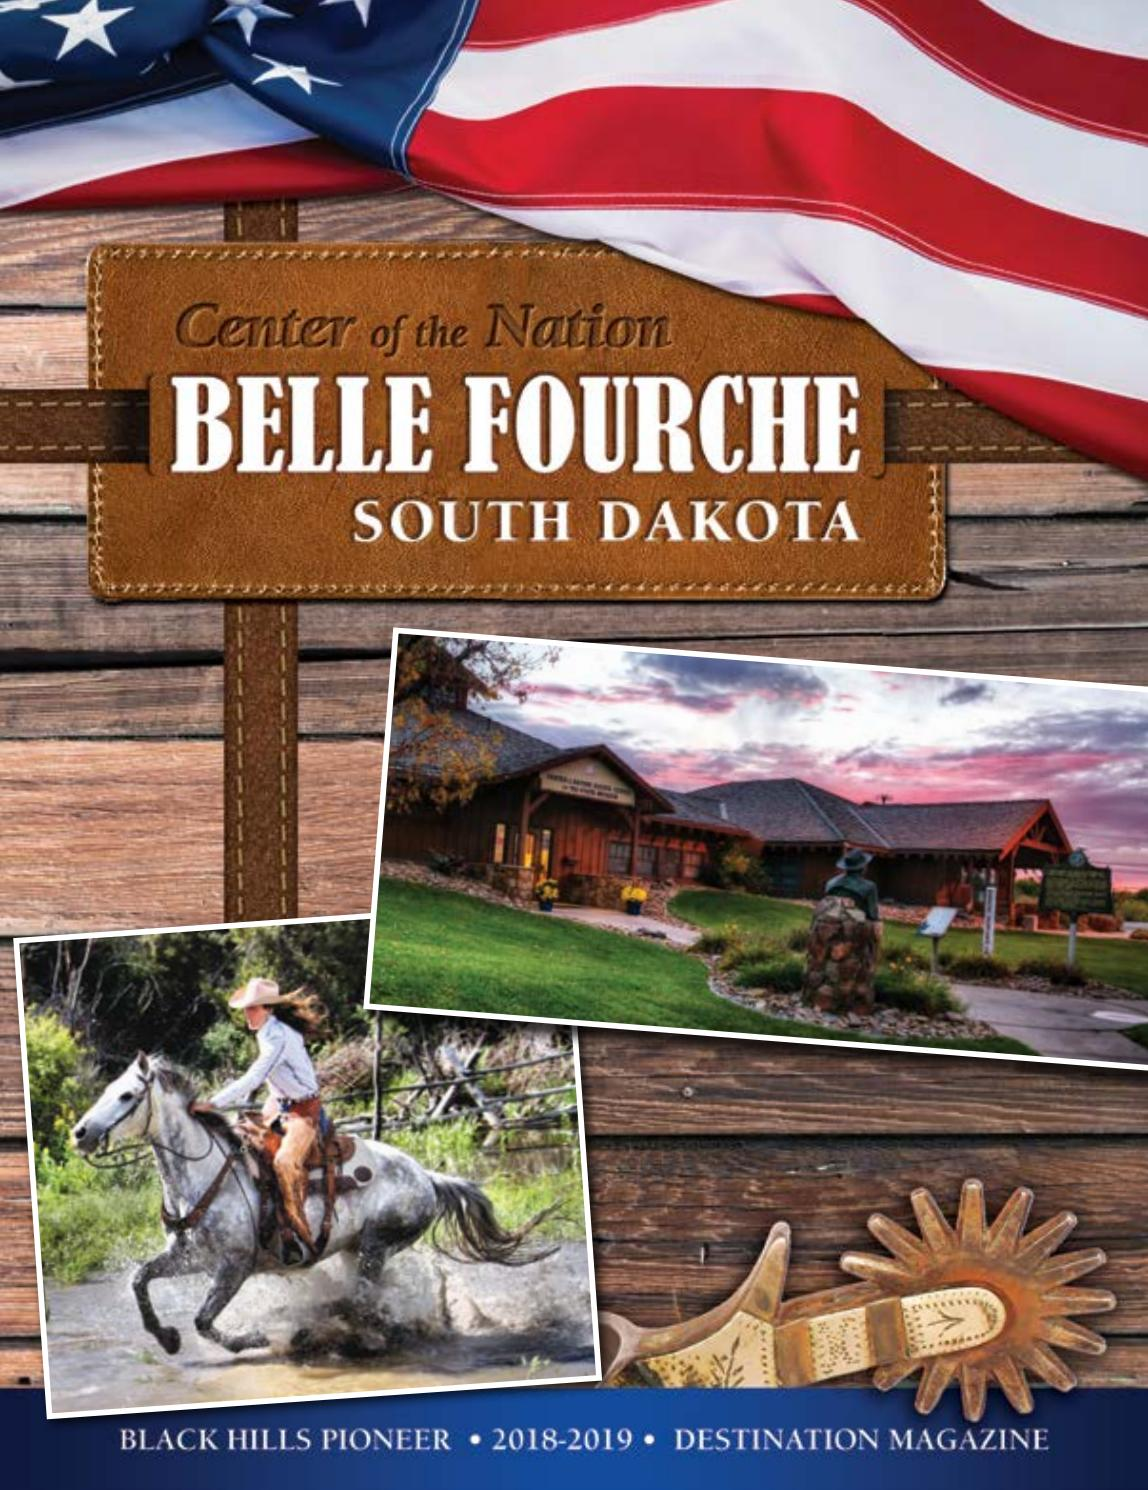 Welcome to Belle Fourche by Black Hills Pioneer - issuu